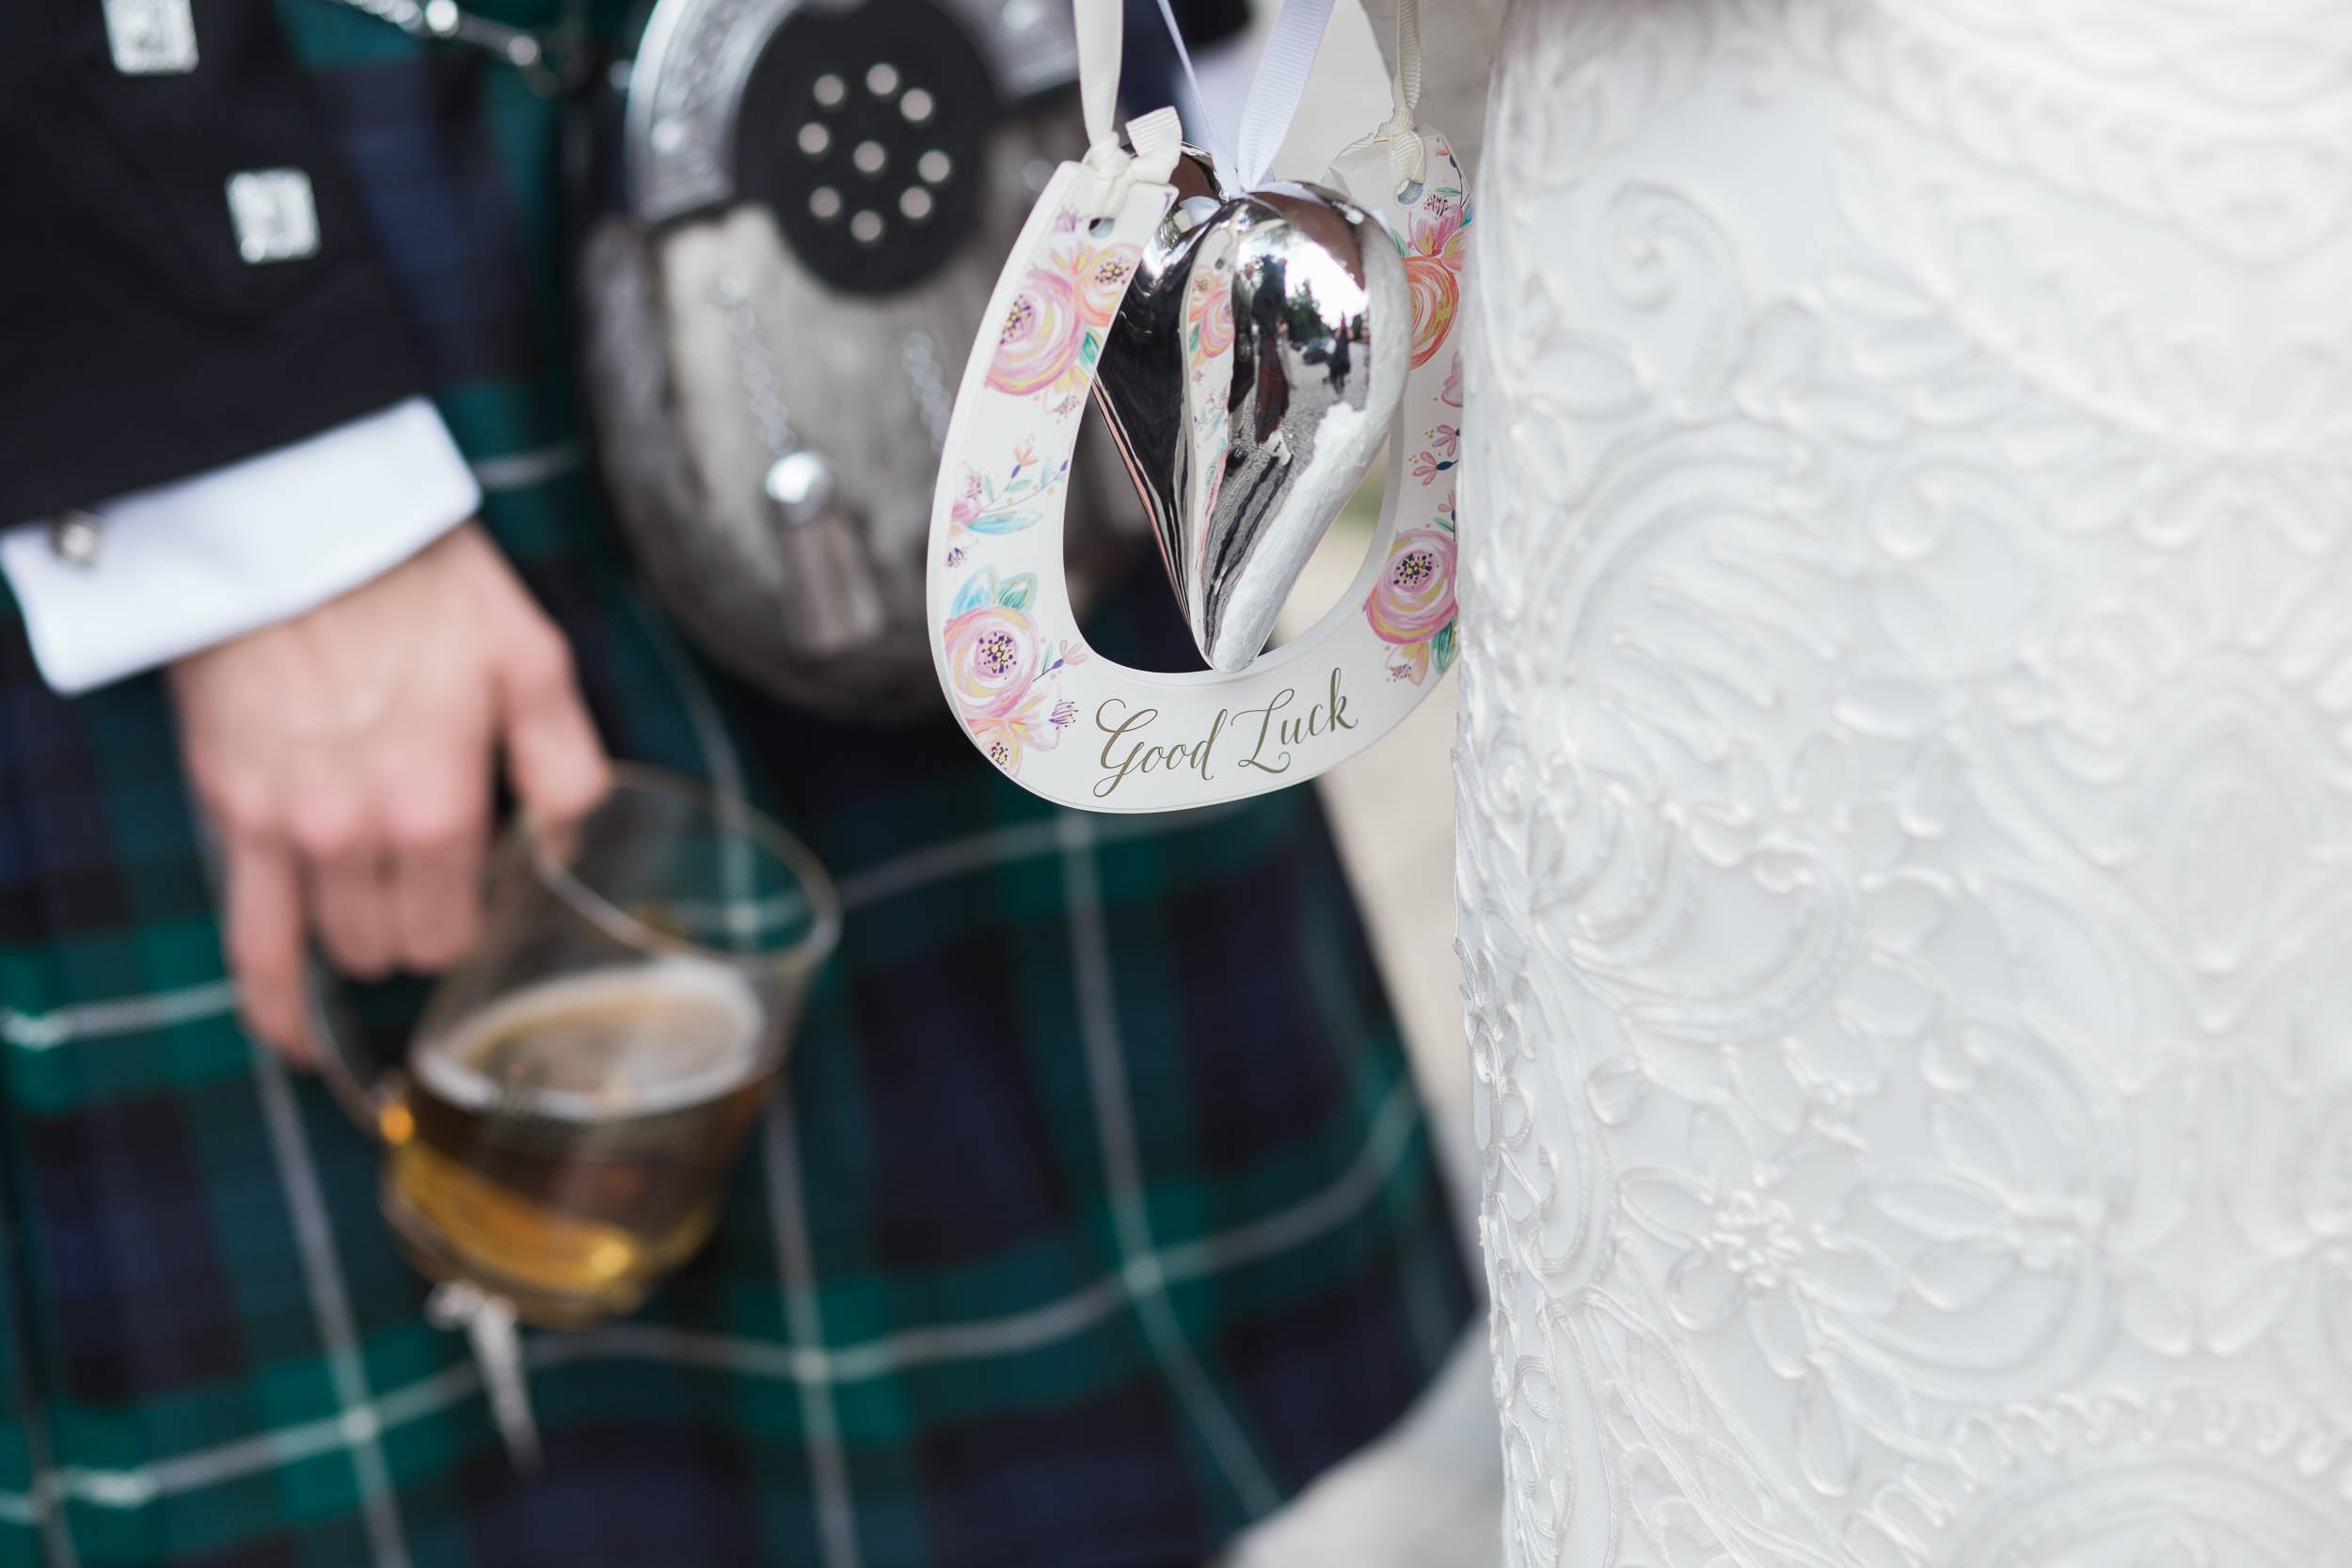 banchorylodgeweddingphotography (12 of 21).jpg